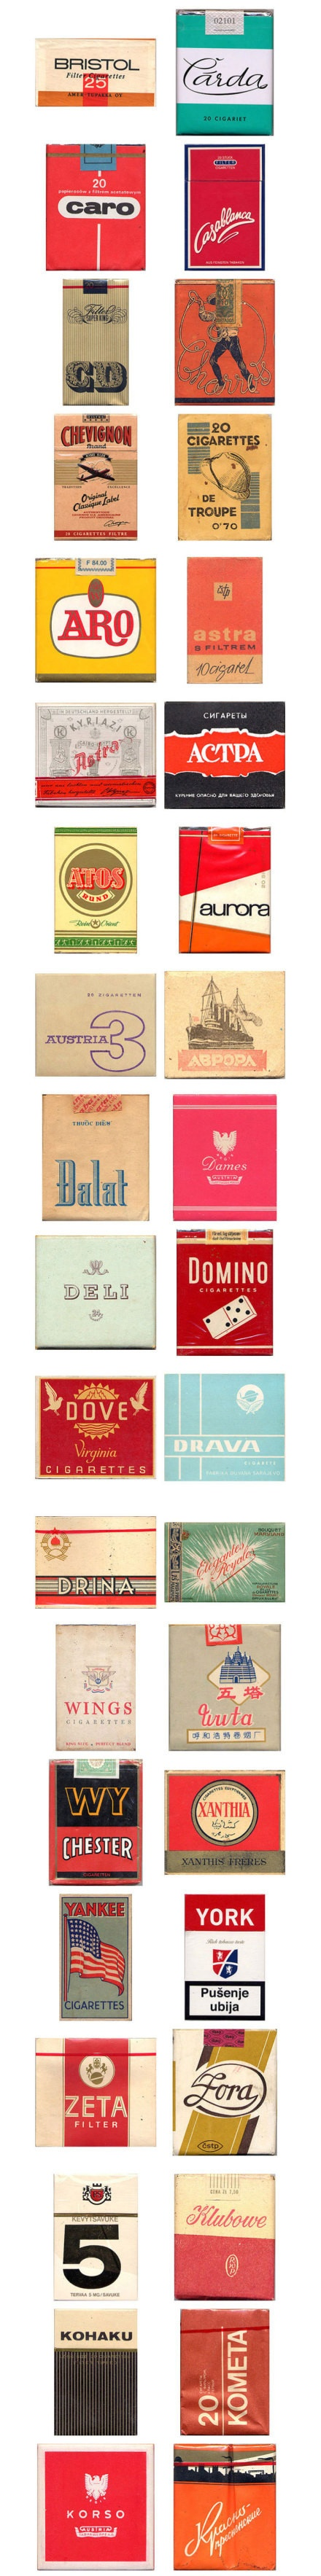 vintage cigarette packaging